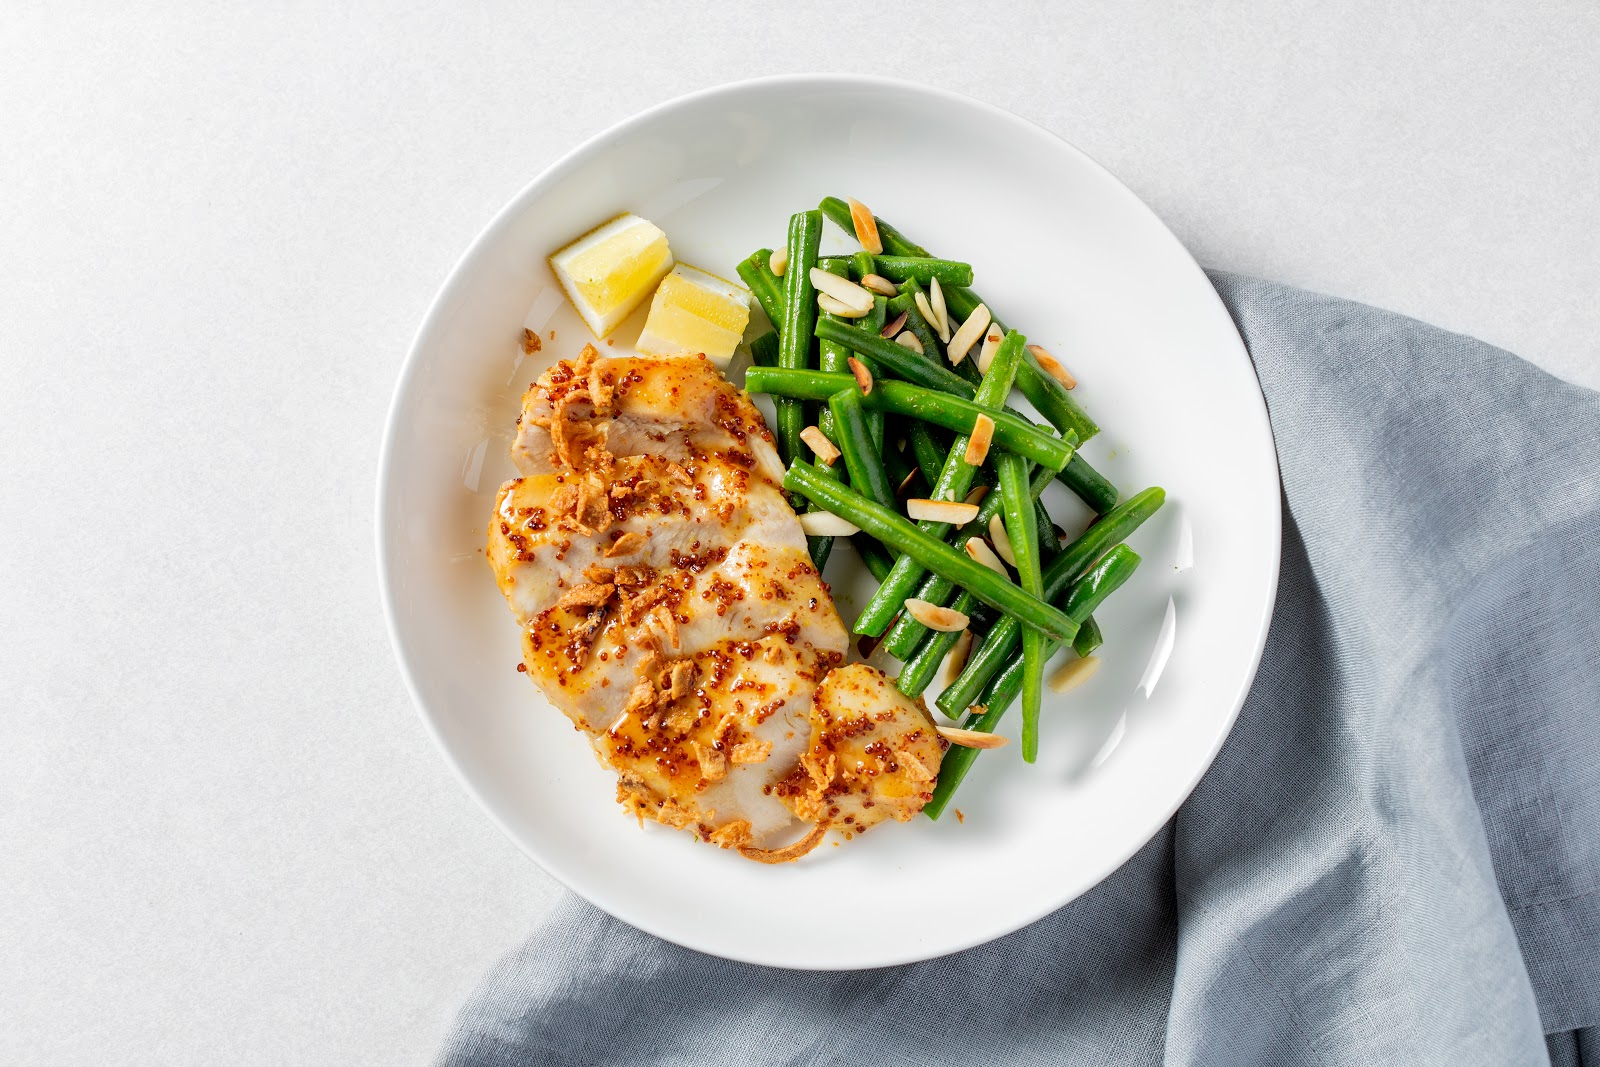 Chicken dinner ideas: a roasted chicken breast and green beans